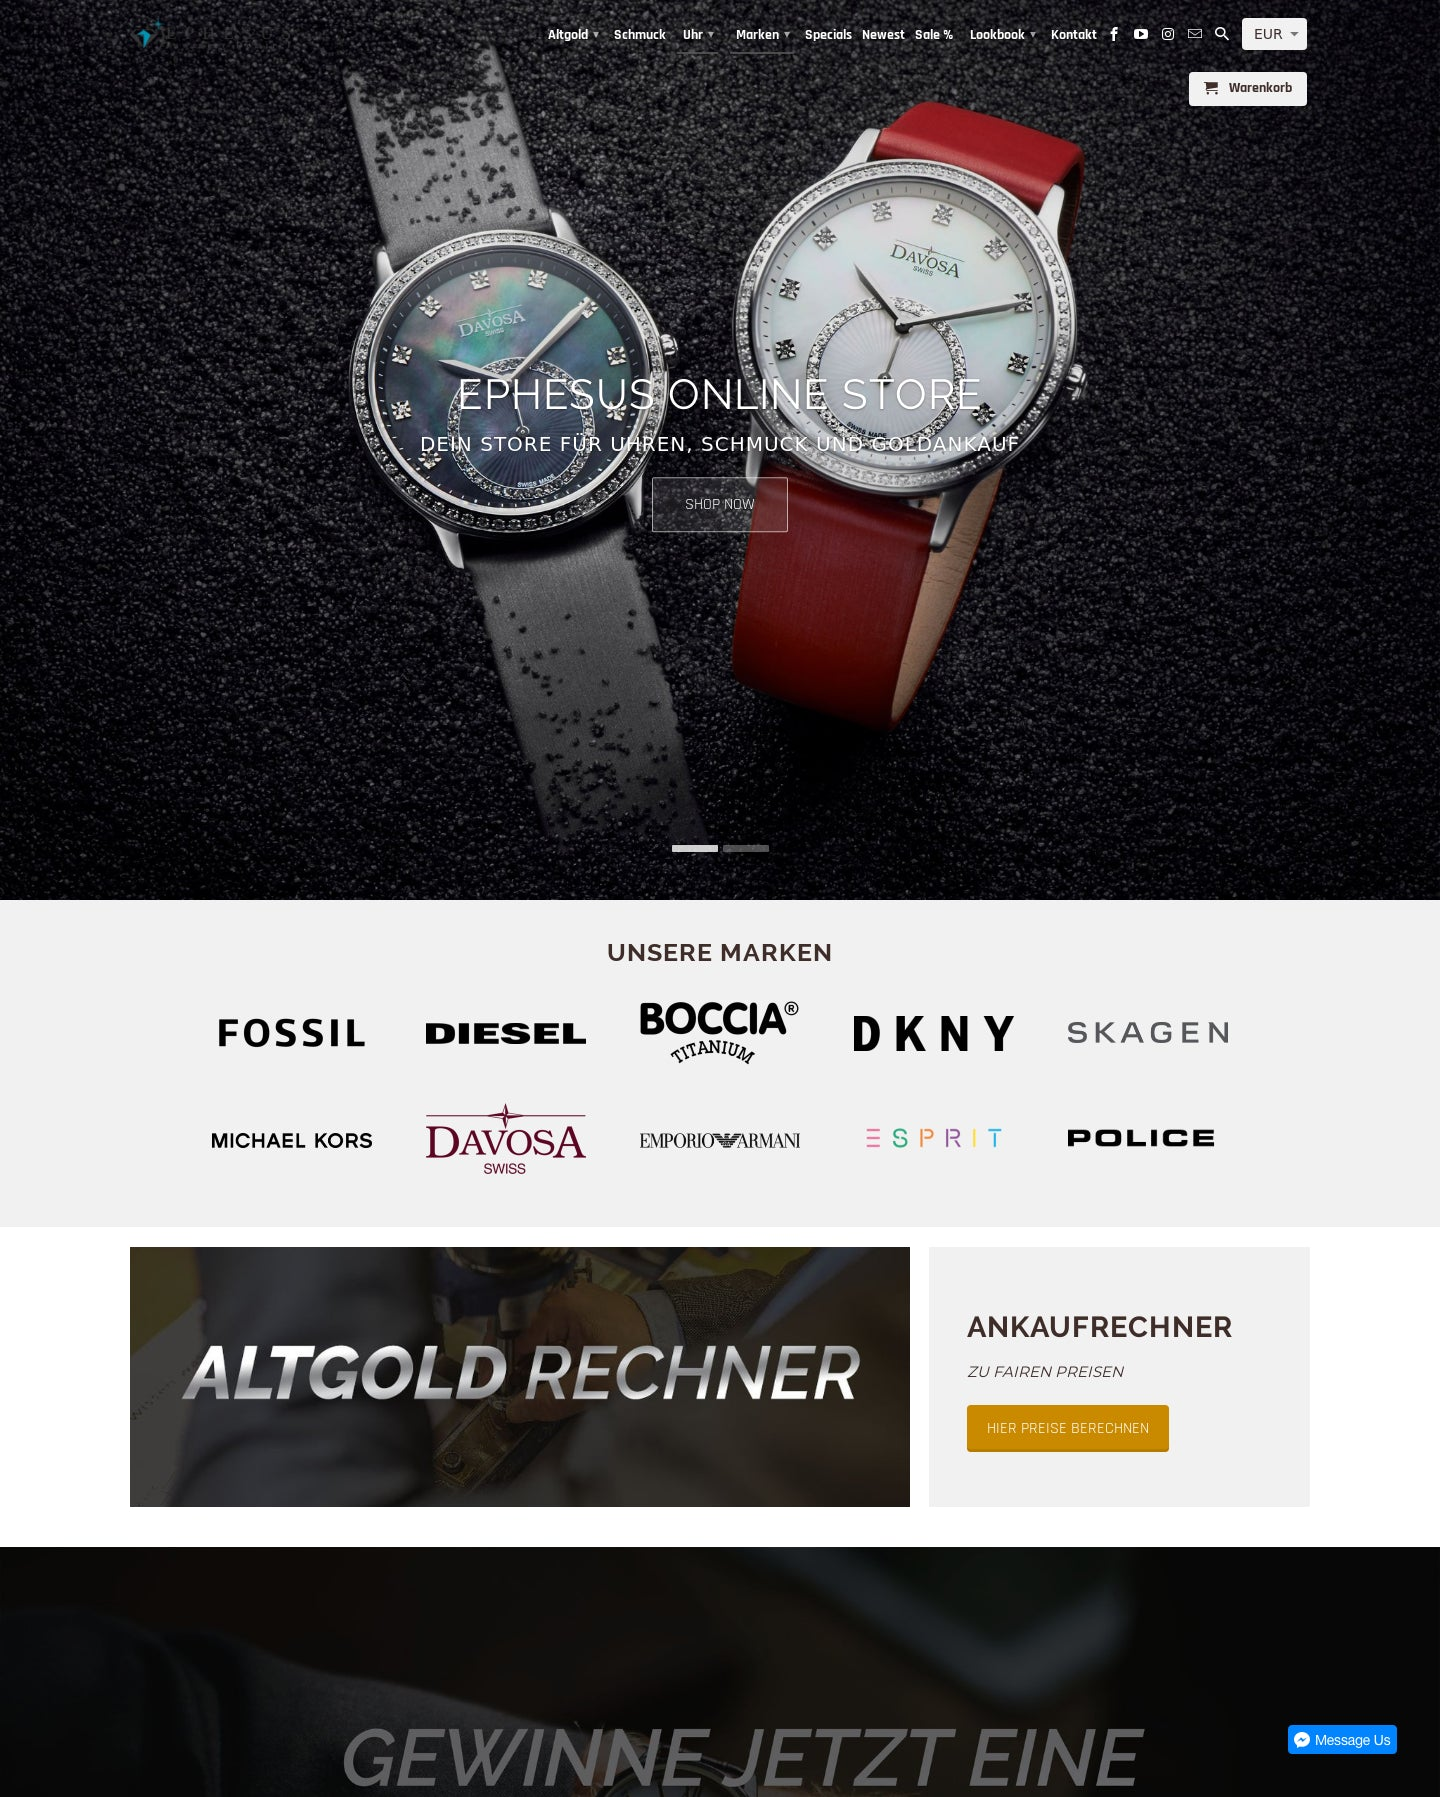 Online Shop for Watches and Jewellery Screenshot - 2